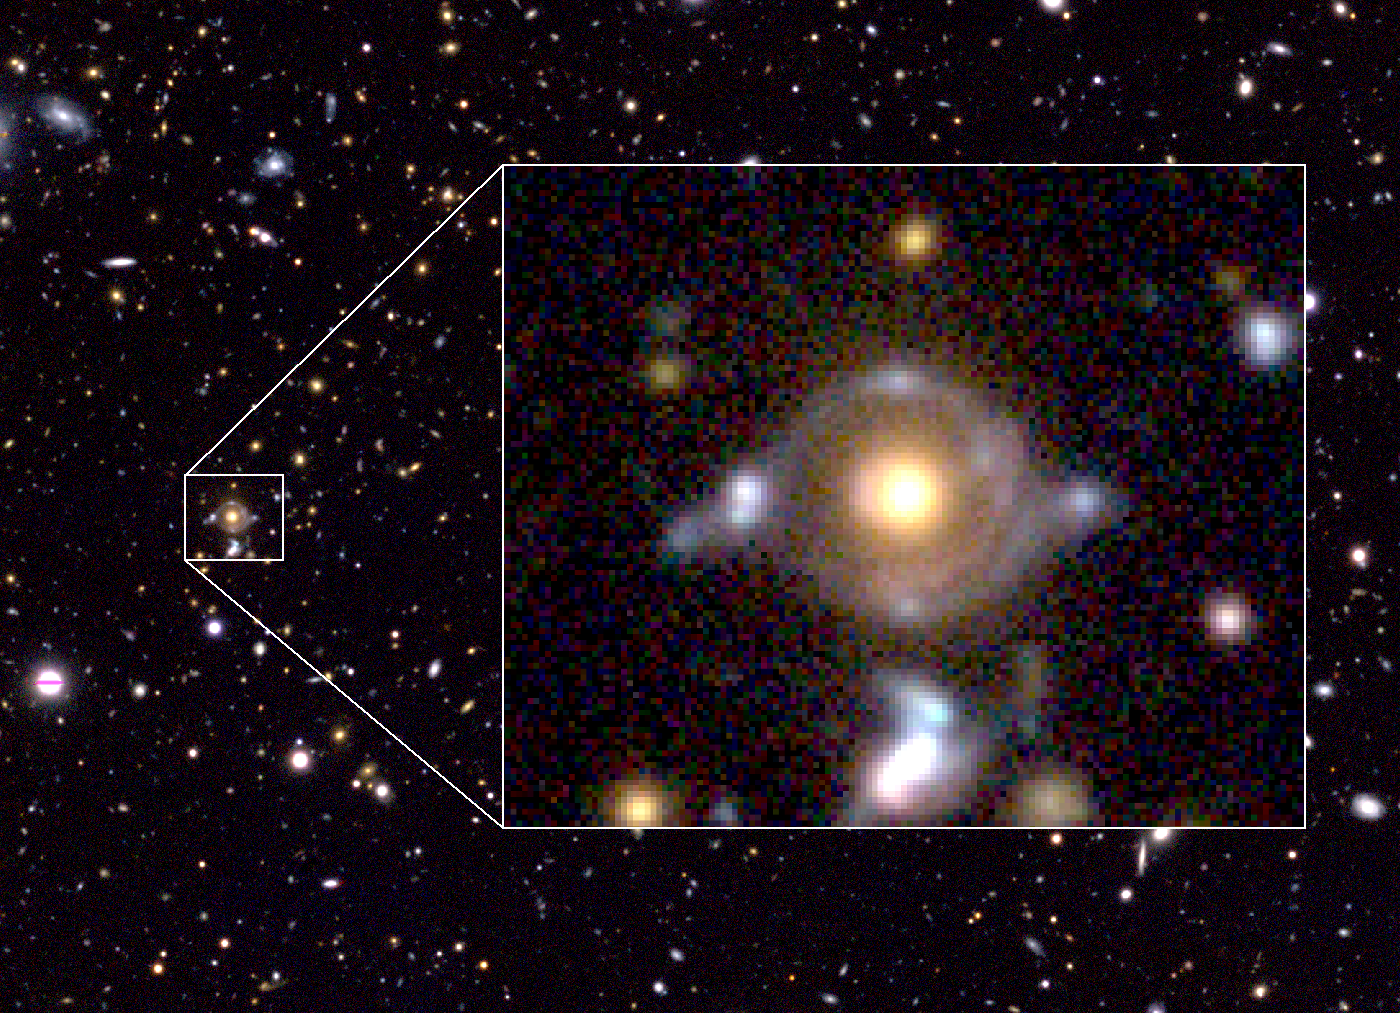 Eye of Horus in pseudo color. Enlarged image to the right (field of view of 23 arcseconds x 19 arcseconds) show two arcs/rings with different colors. The inner arc has a reddish hue, while the outer arc has a blue tint. These arcs are lensed images of the two background galaxies. There are blobs in and around the arcs/rings, which are also the lensed images of those background galaxies. The yellow-ish object at the center is a massive galaxy at z = 0.79 (distance 7 billion light years), which bends the light from the two background galaxies.